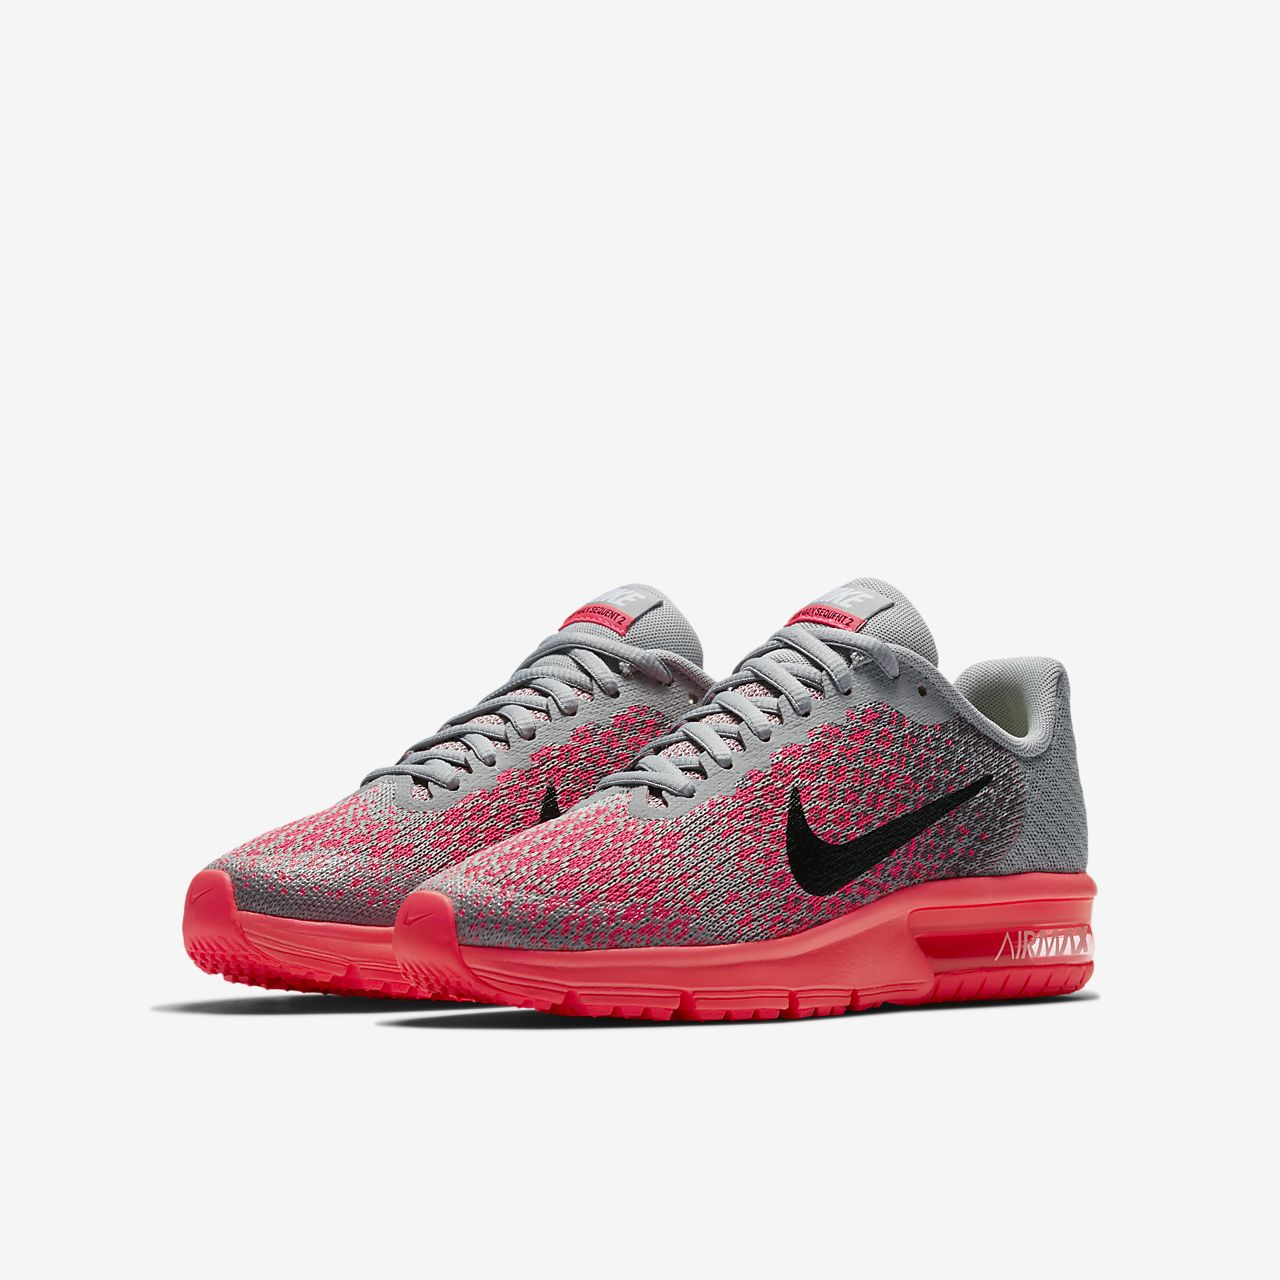 a48424cfcc2 Sapatilhas de running Nike Air Max Sequent 2 Júnior. Nike.com PT